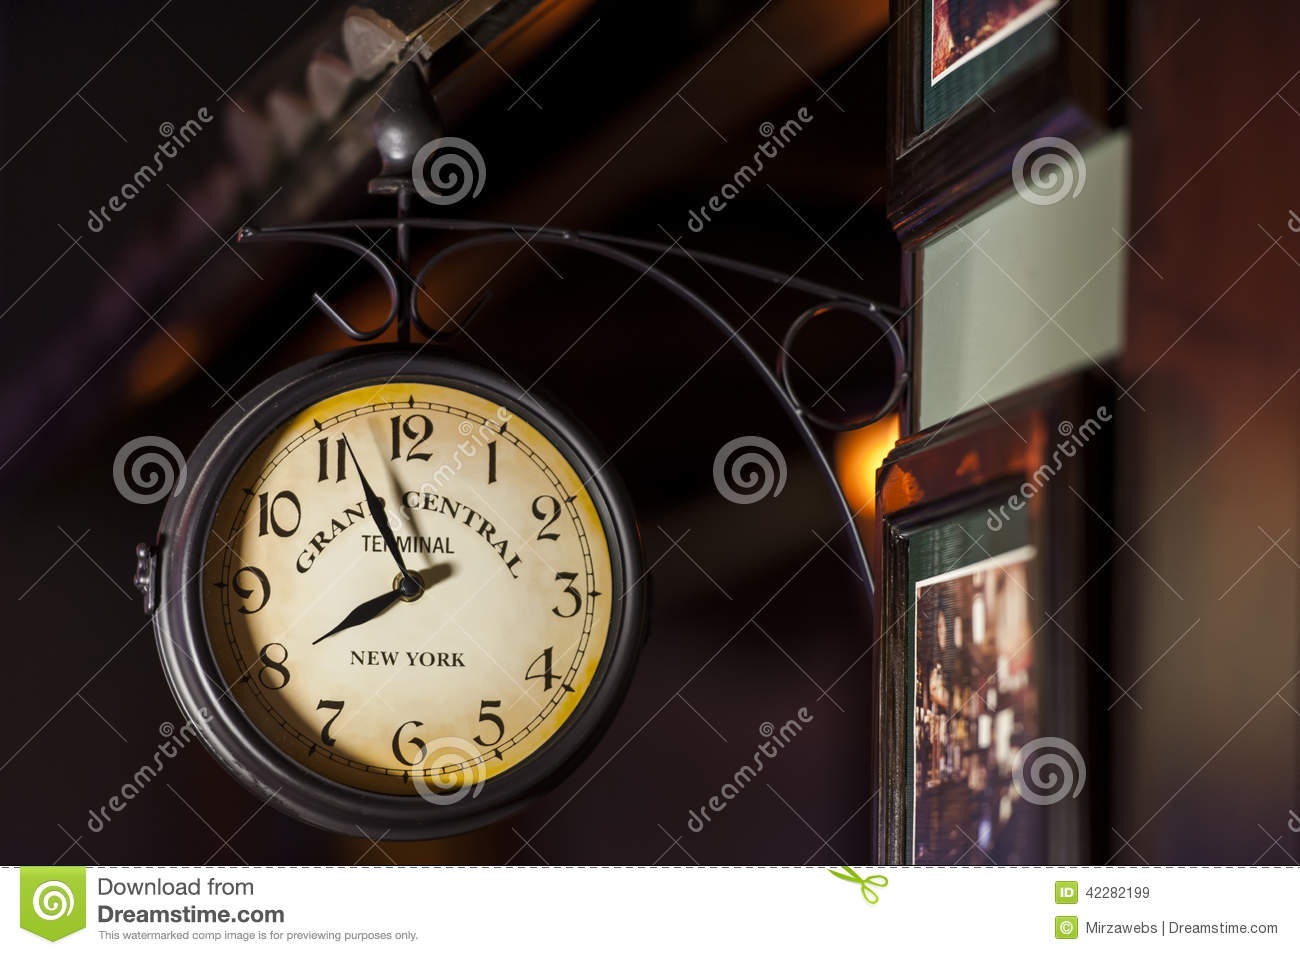 grand central terminal old clock editorial stock image image editorial stock photo download grand central terminal small london train station double